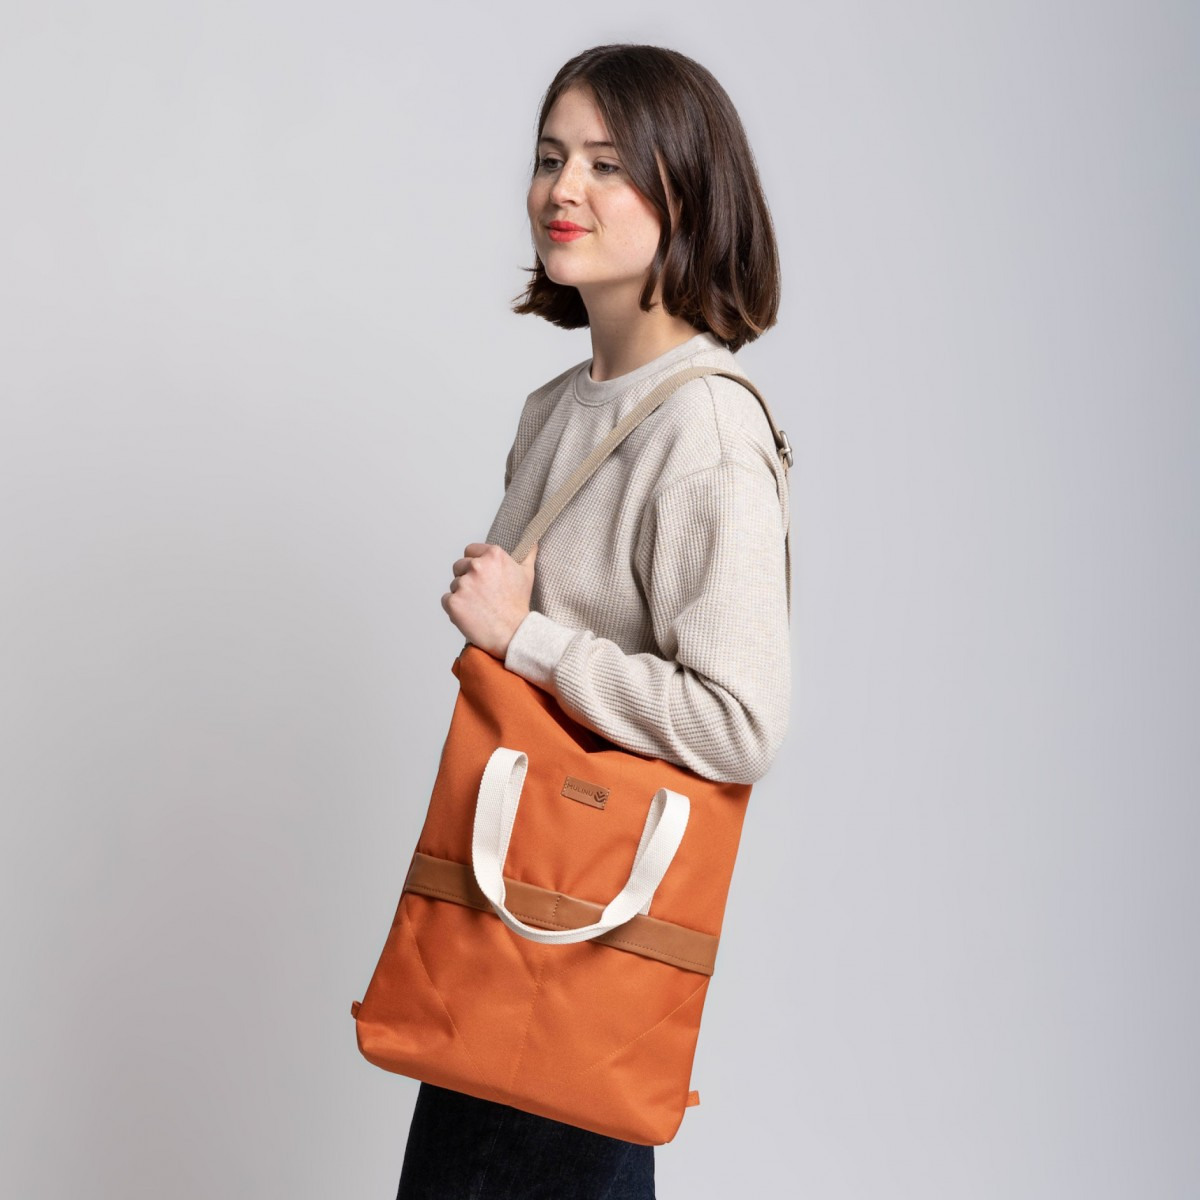 MULINU 3-in-1 Rucksack UNIQUE GRETA Terracotta